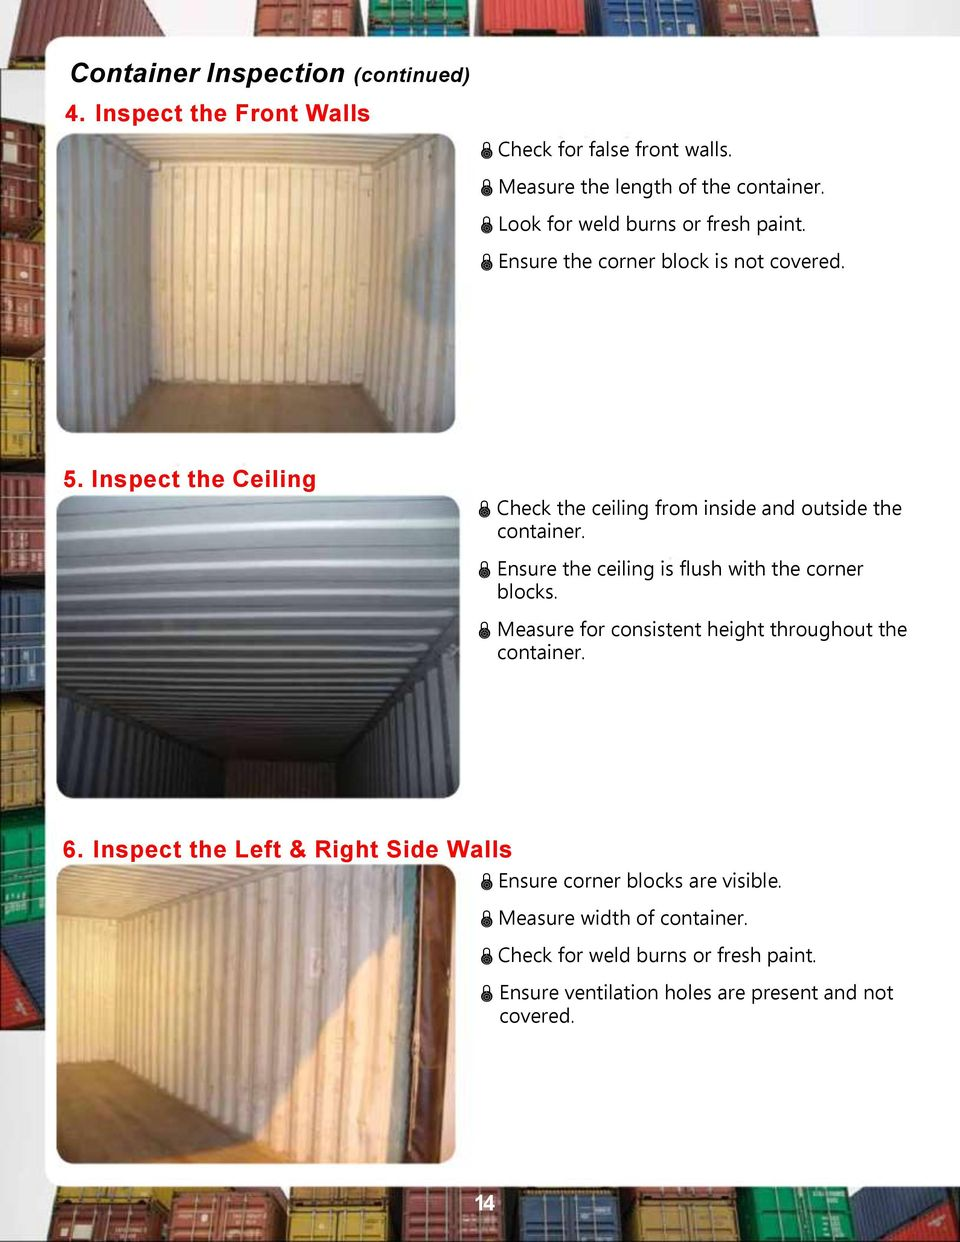 Inspect the Ceiling Check the ceiling from inside and outside the container. Ensure the ceiling is flush with the corner blocks.